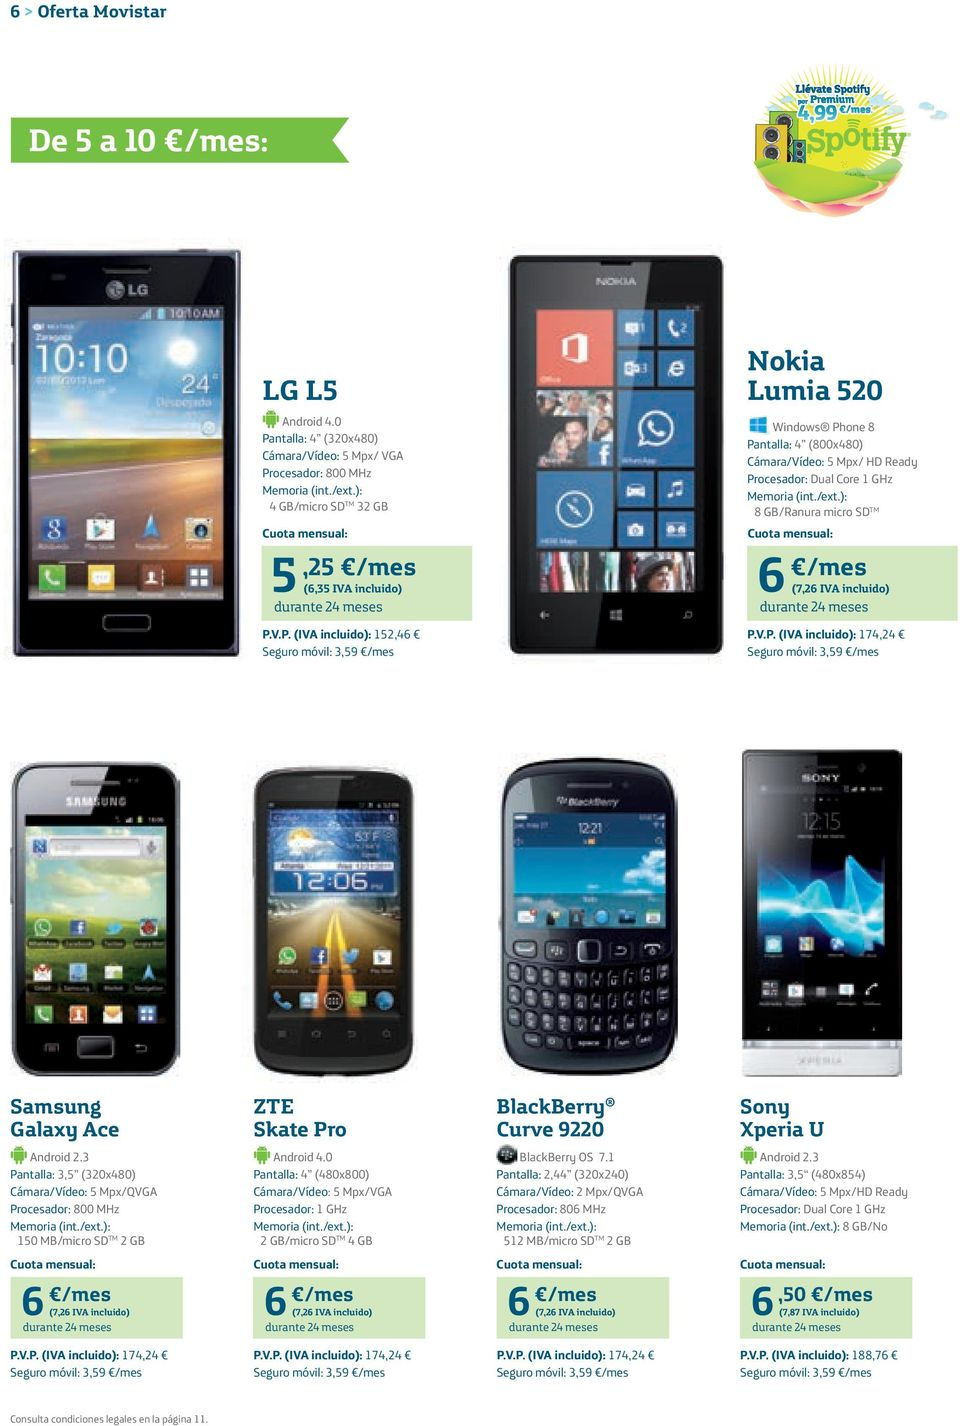 /mes (6,35 IVA incluido) 6 /mes (7,26 IVA incluido) P.V.P. (IVA incluido): 152,46 P.V.P. (IVA incluido): 174,24 Galaxy Ace ZTE Skate Pro BlackBerry Curve 9220 Sony Xperia U Android 2.